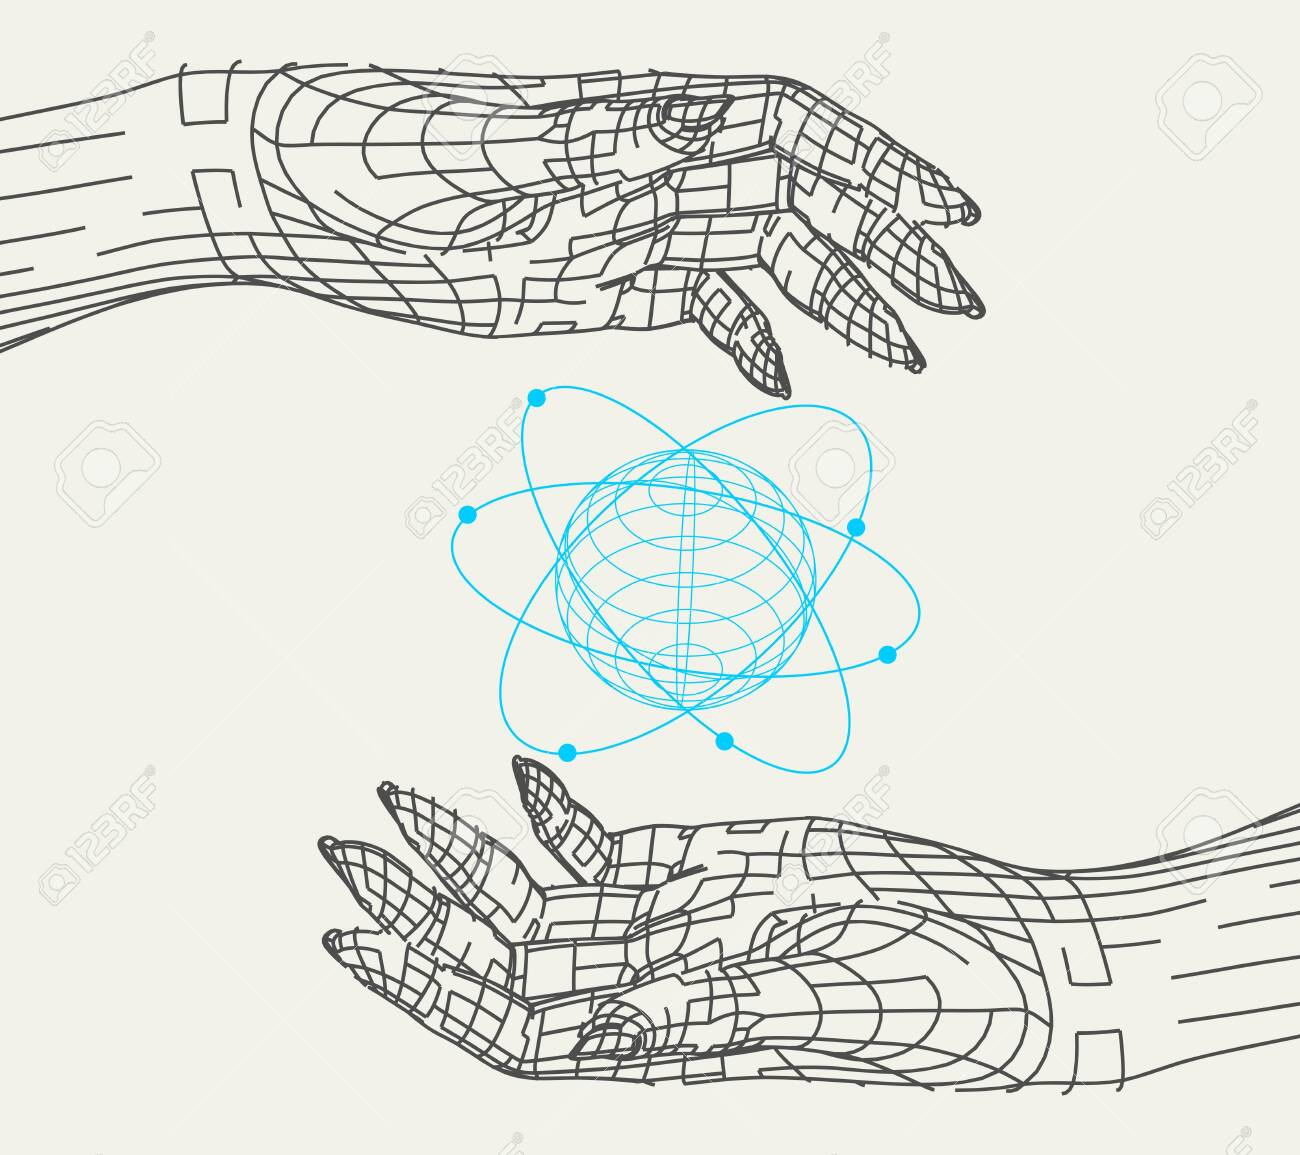 polygonal hands and atom model. wire frame style. 3d human parts. royalty  free cliparts, vectors, and stock illustration. image 129396781.  123rf